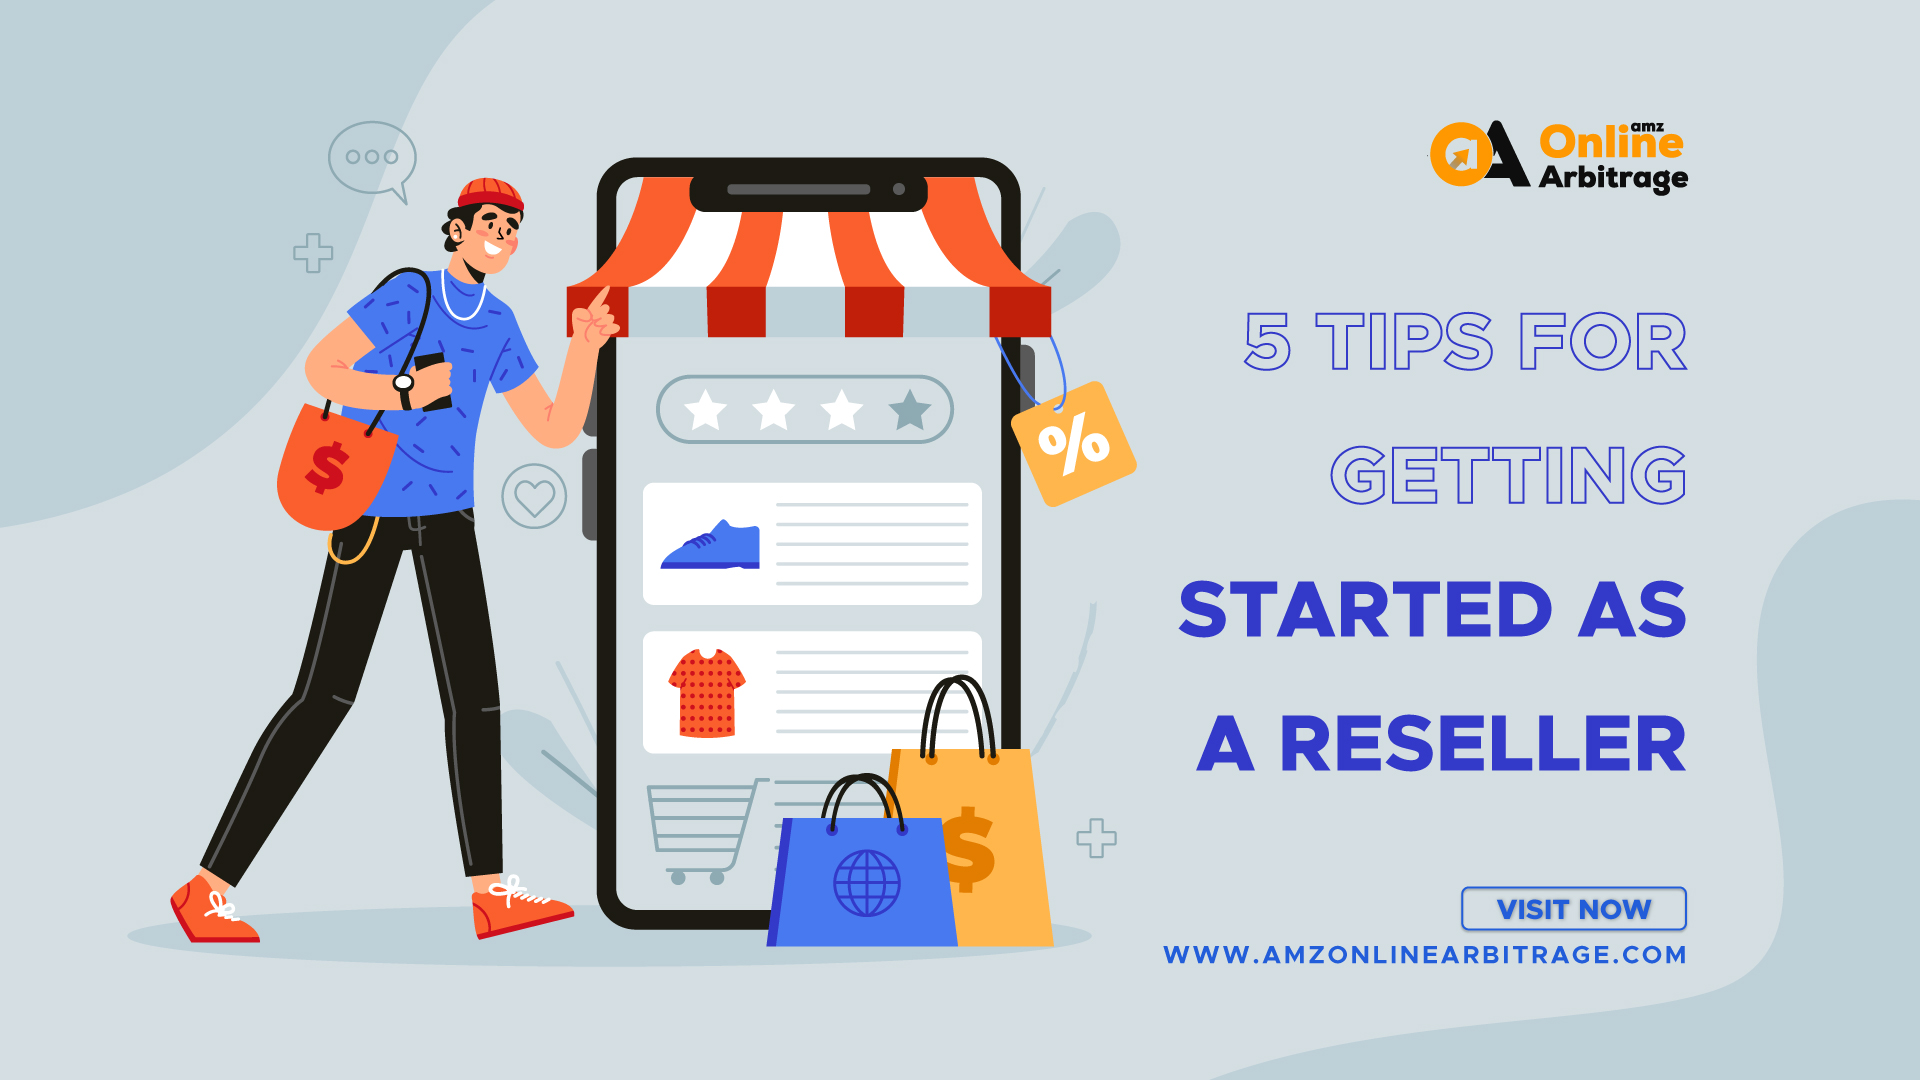 5 TIPS FOR GETTING STARTED AS A RESELLER